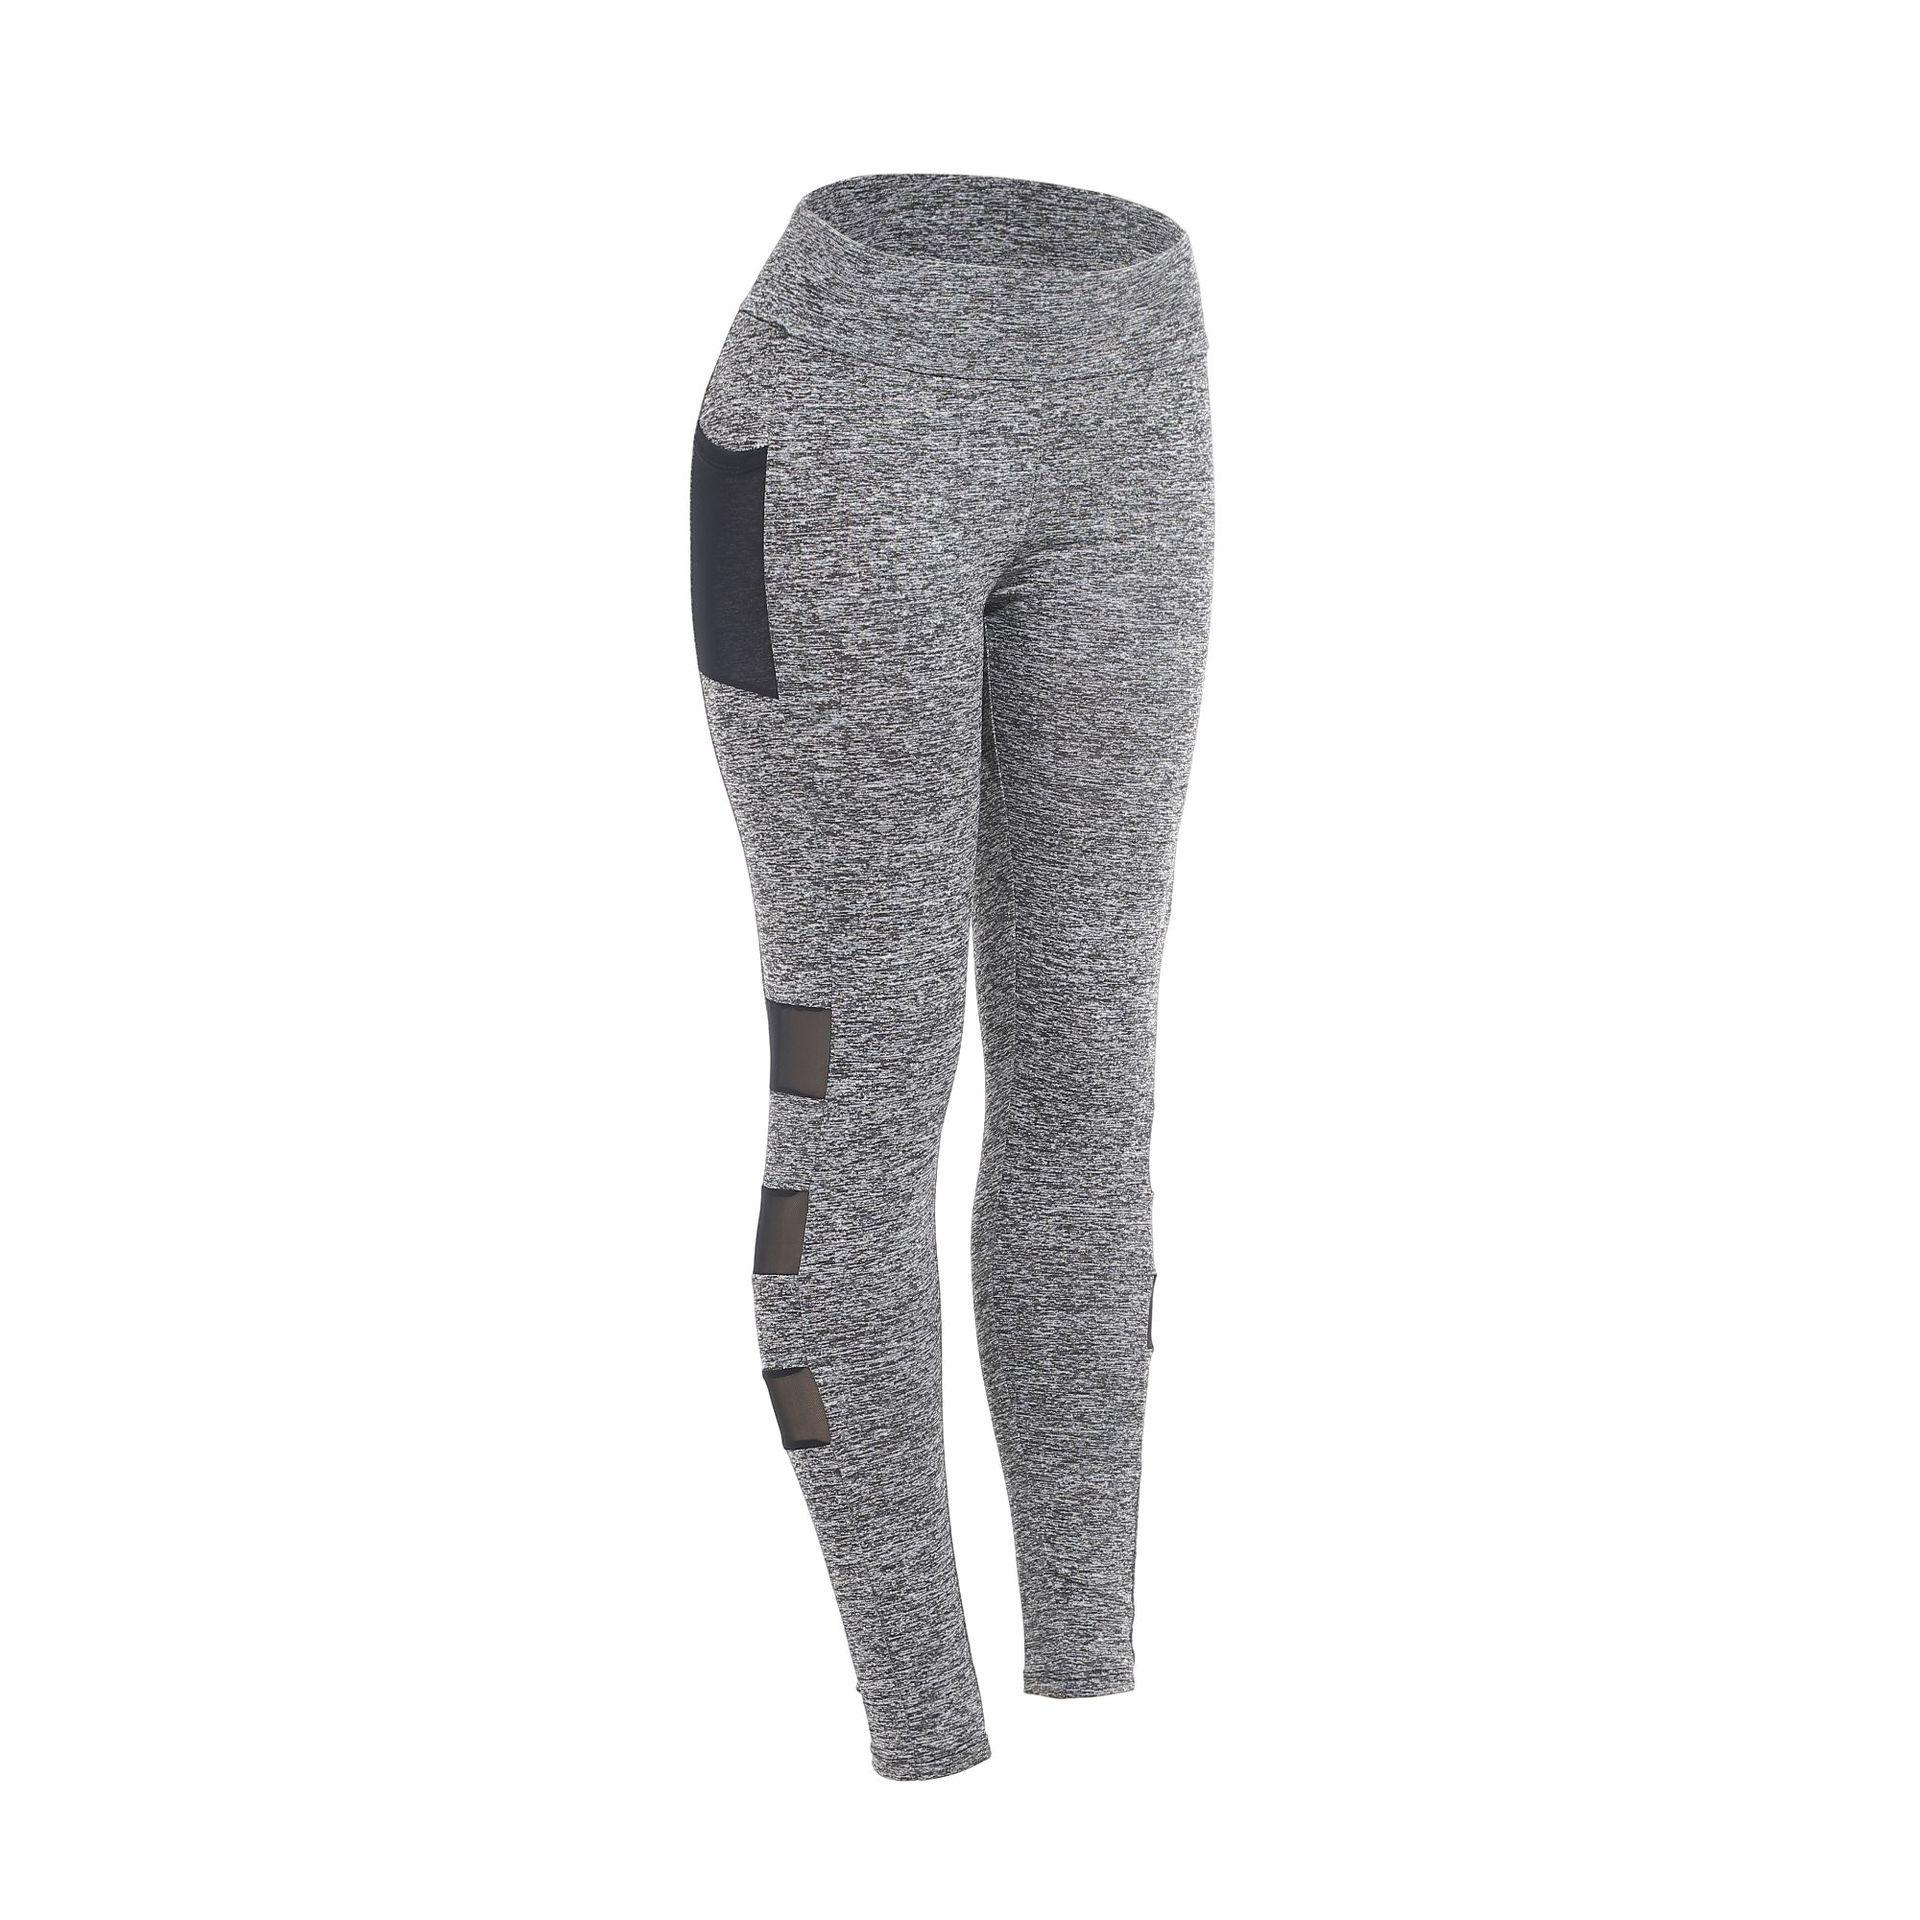 New Colour-impact Yoga Pants, Breathable and Quick-drying Milk Silk Sports Pants in Europe and America, Tight Sports Elastic Ladies Yoga Pan